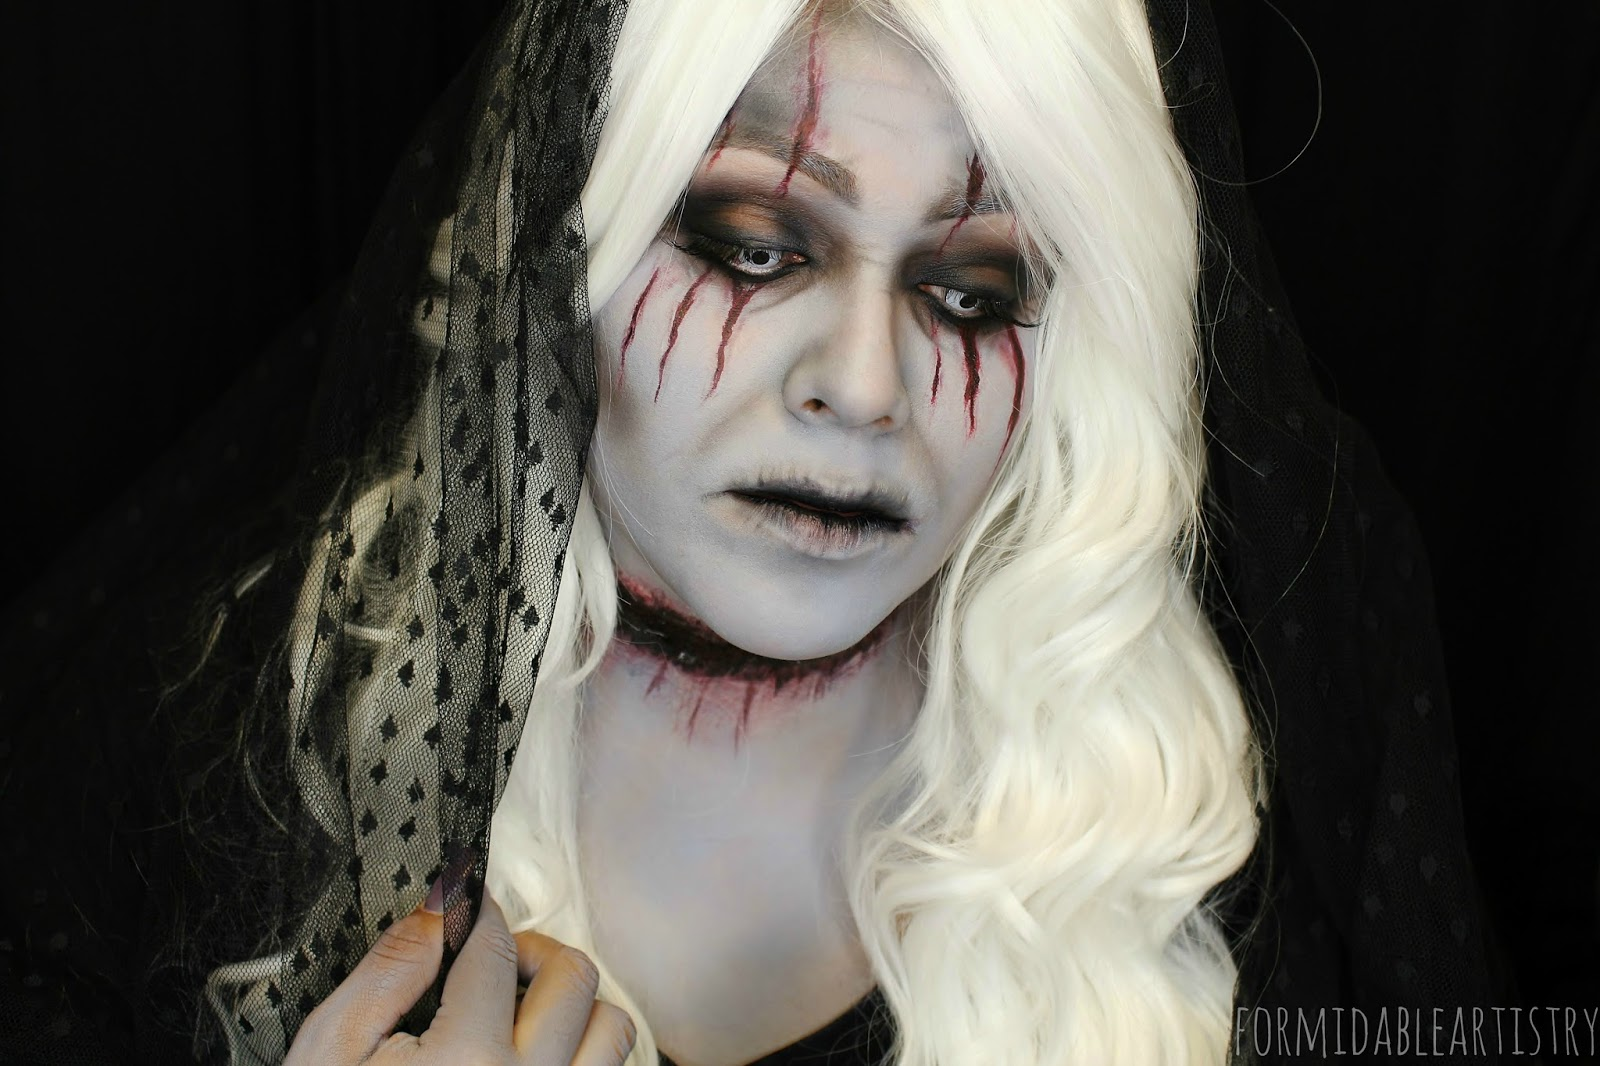 formidableartistry game of thrones lady stoneheart 31 days of rh formidableartistry blogspot com black and white makeup ideas best white costume makeup